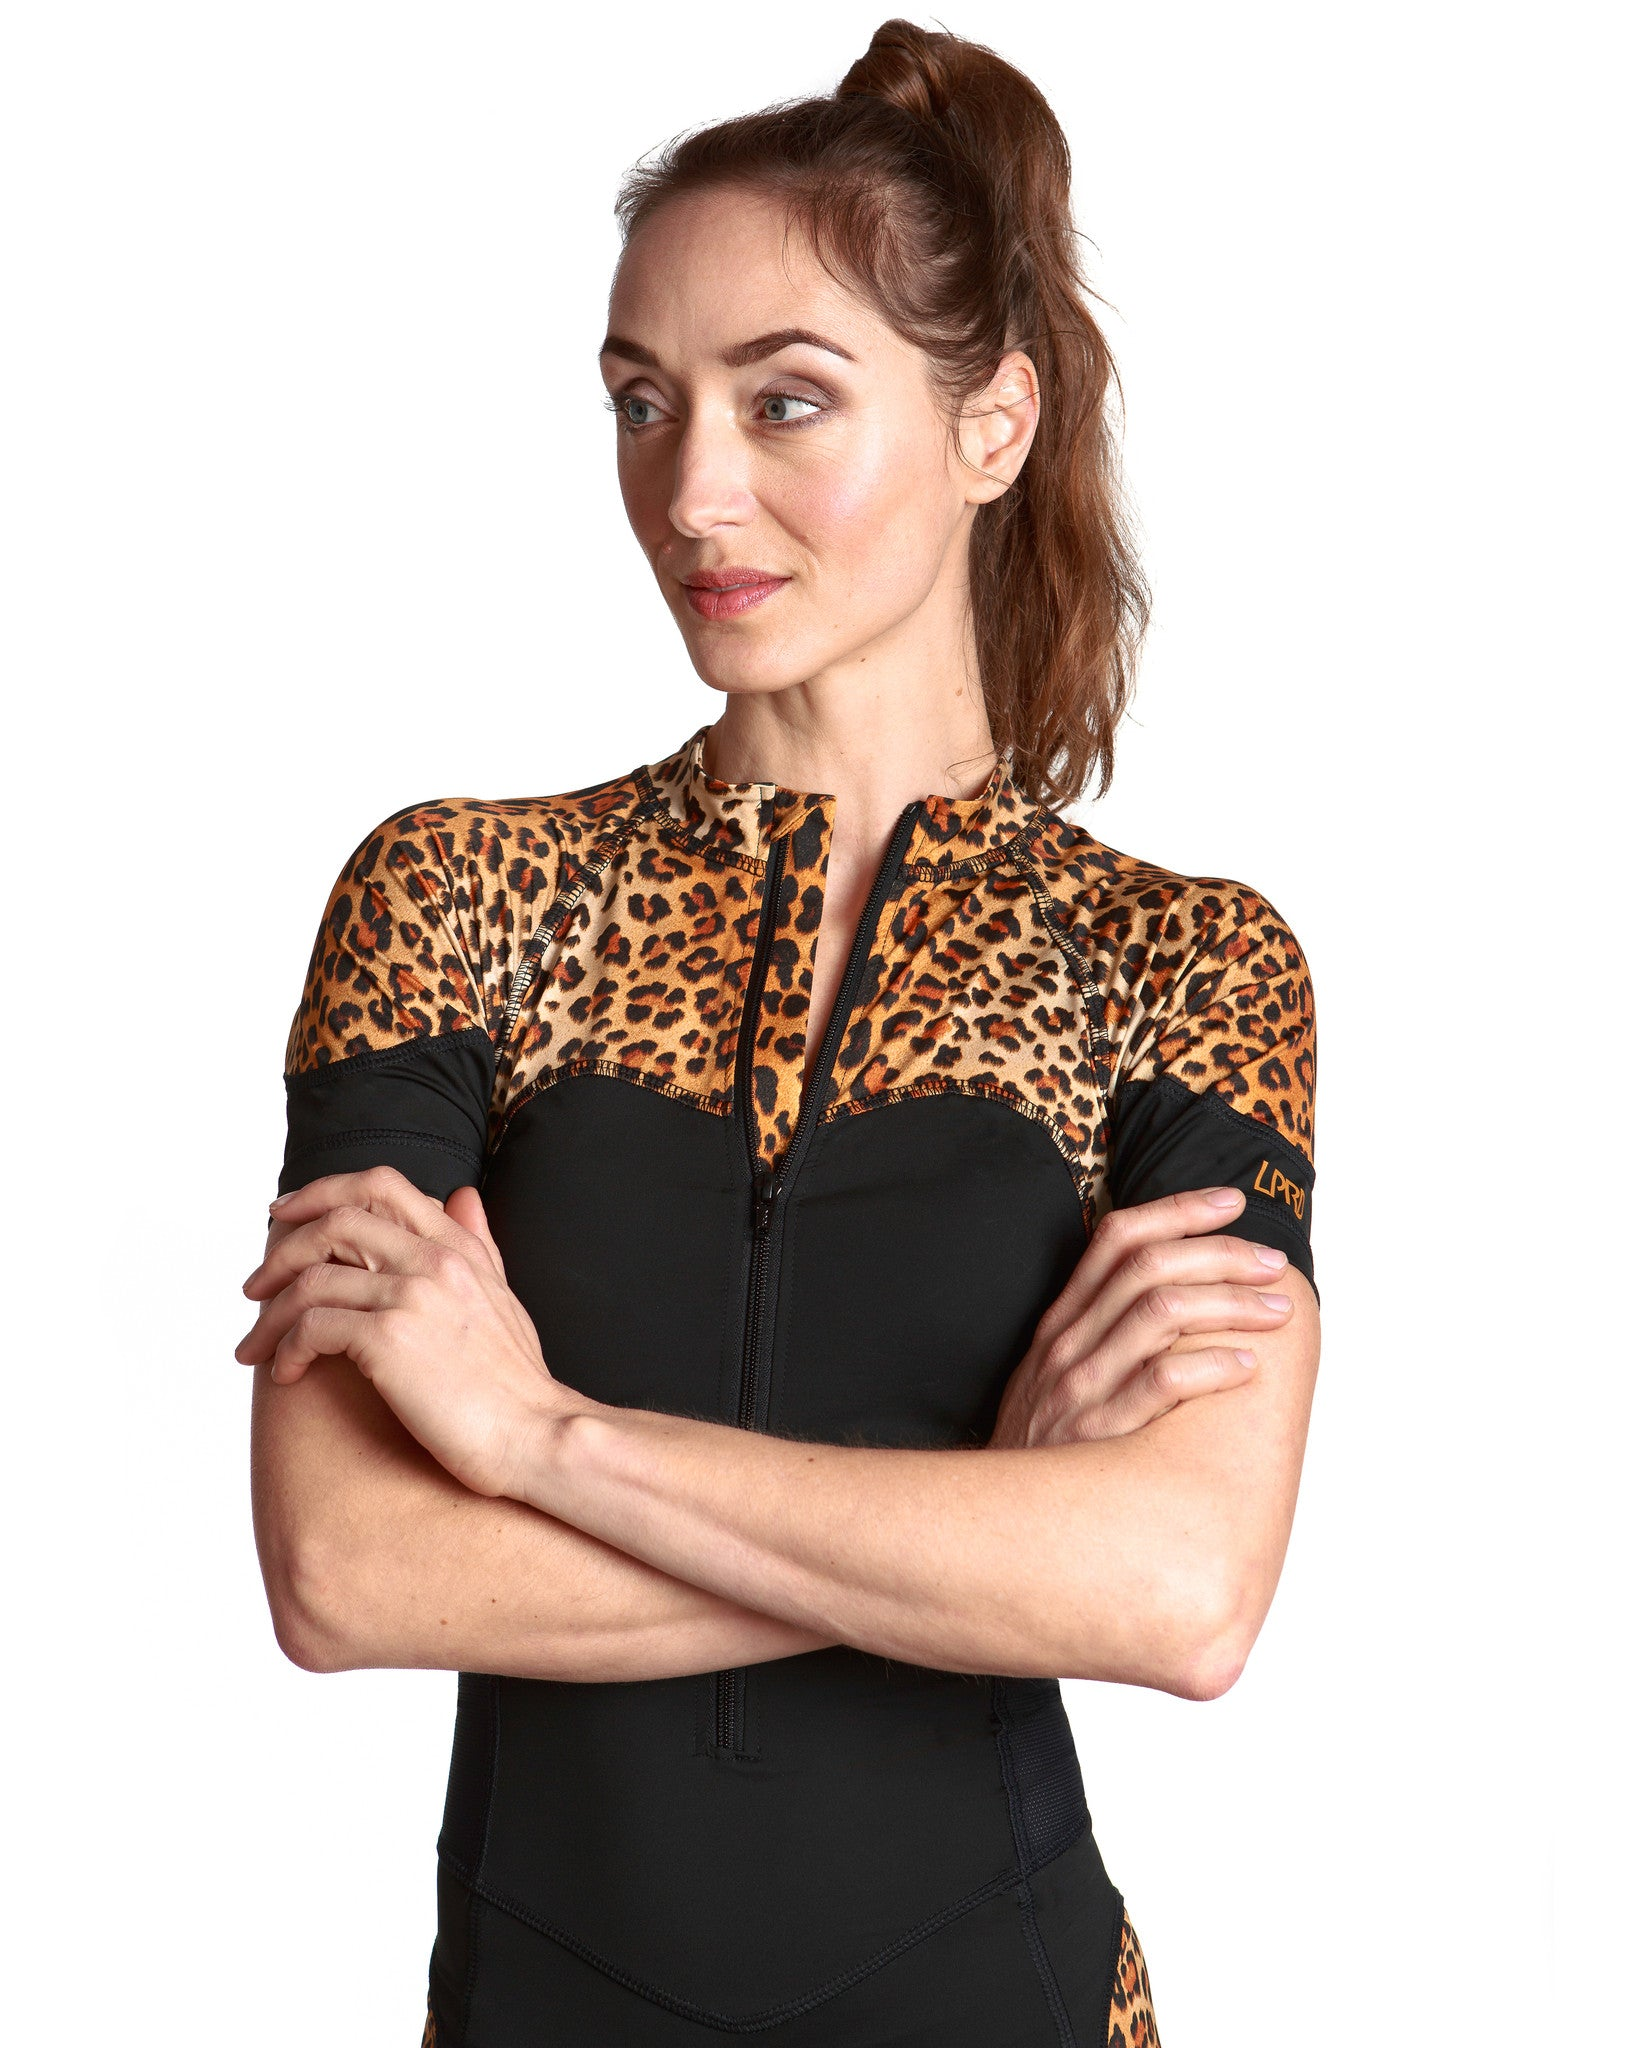 LPRD Black with Leopard Panel Cycling Skinsuit | Close-up Front View Zipper Garage Detail